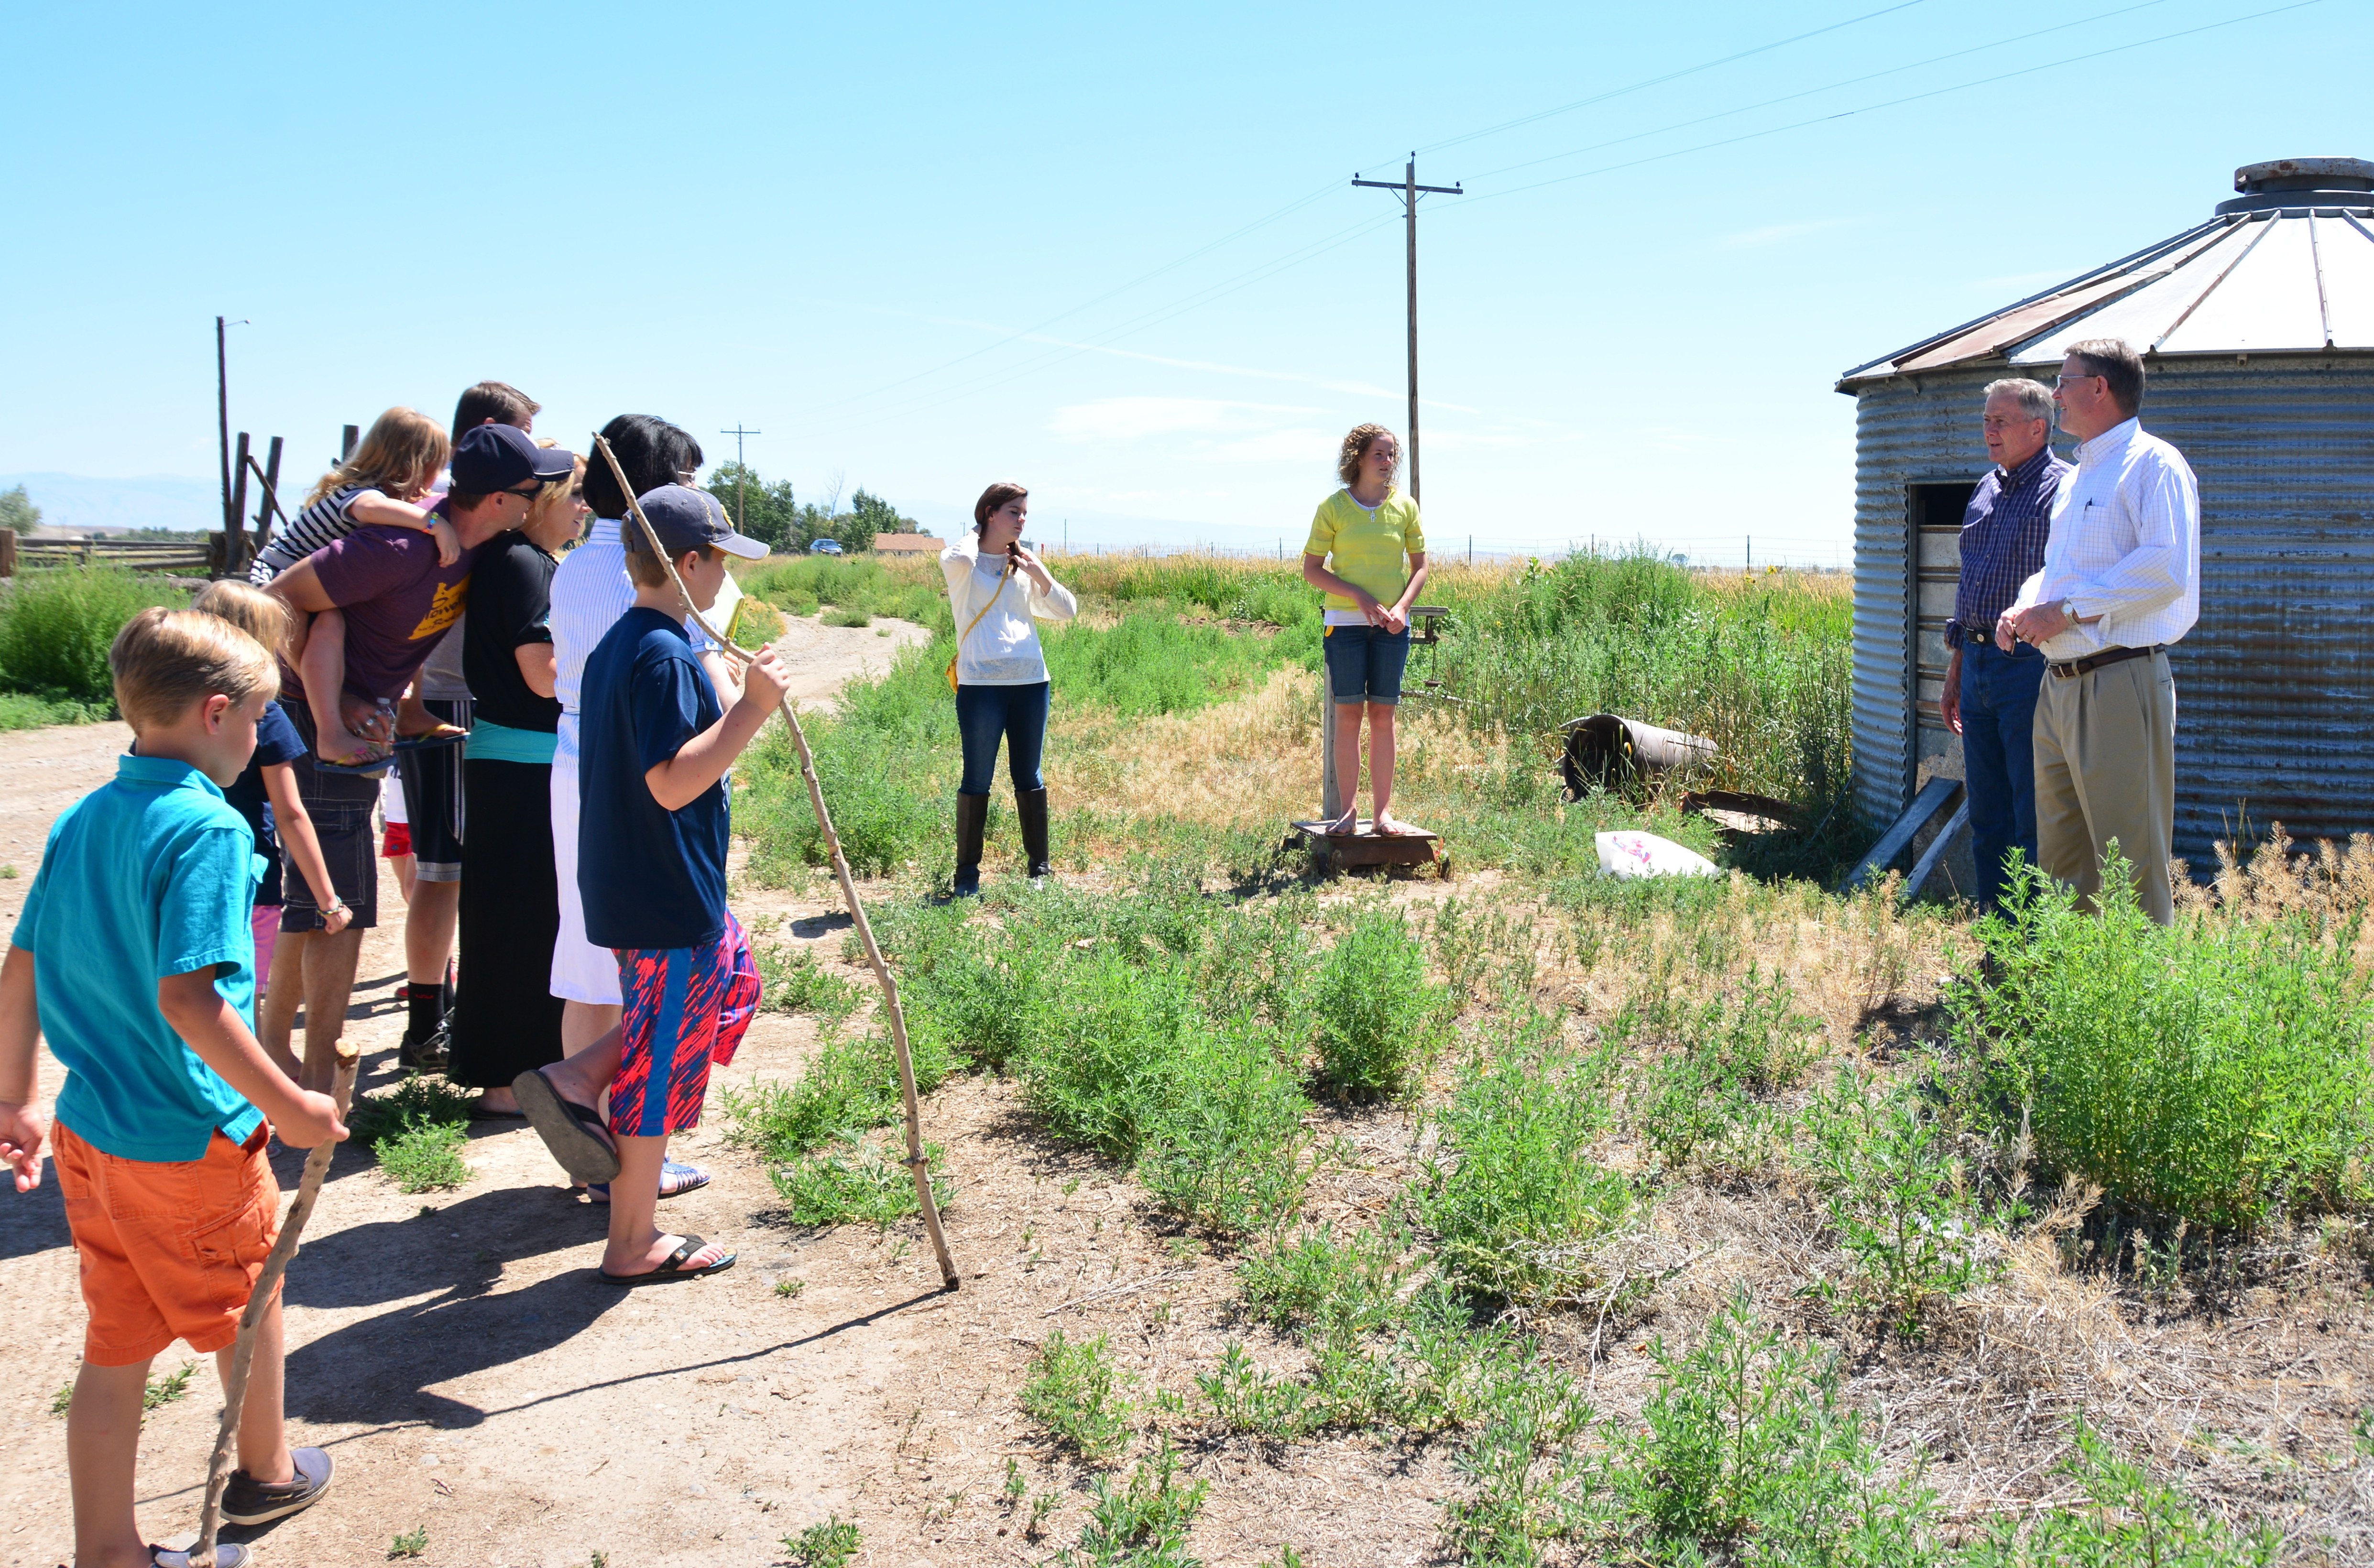 Learning about the old homestead in Wyoming established in the early 1900s